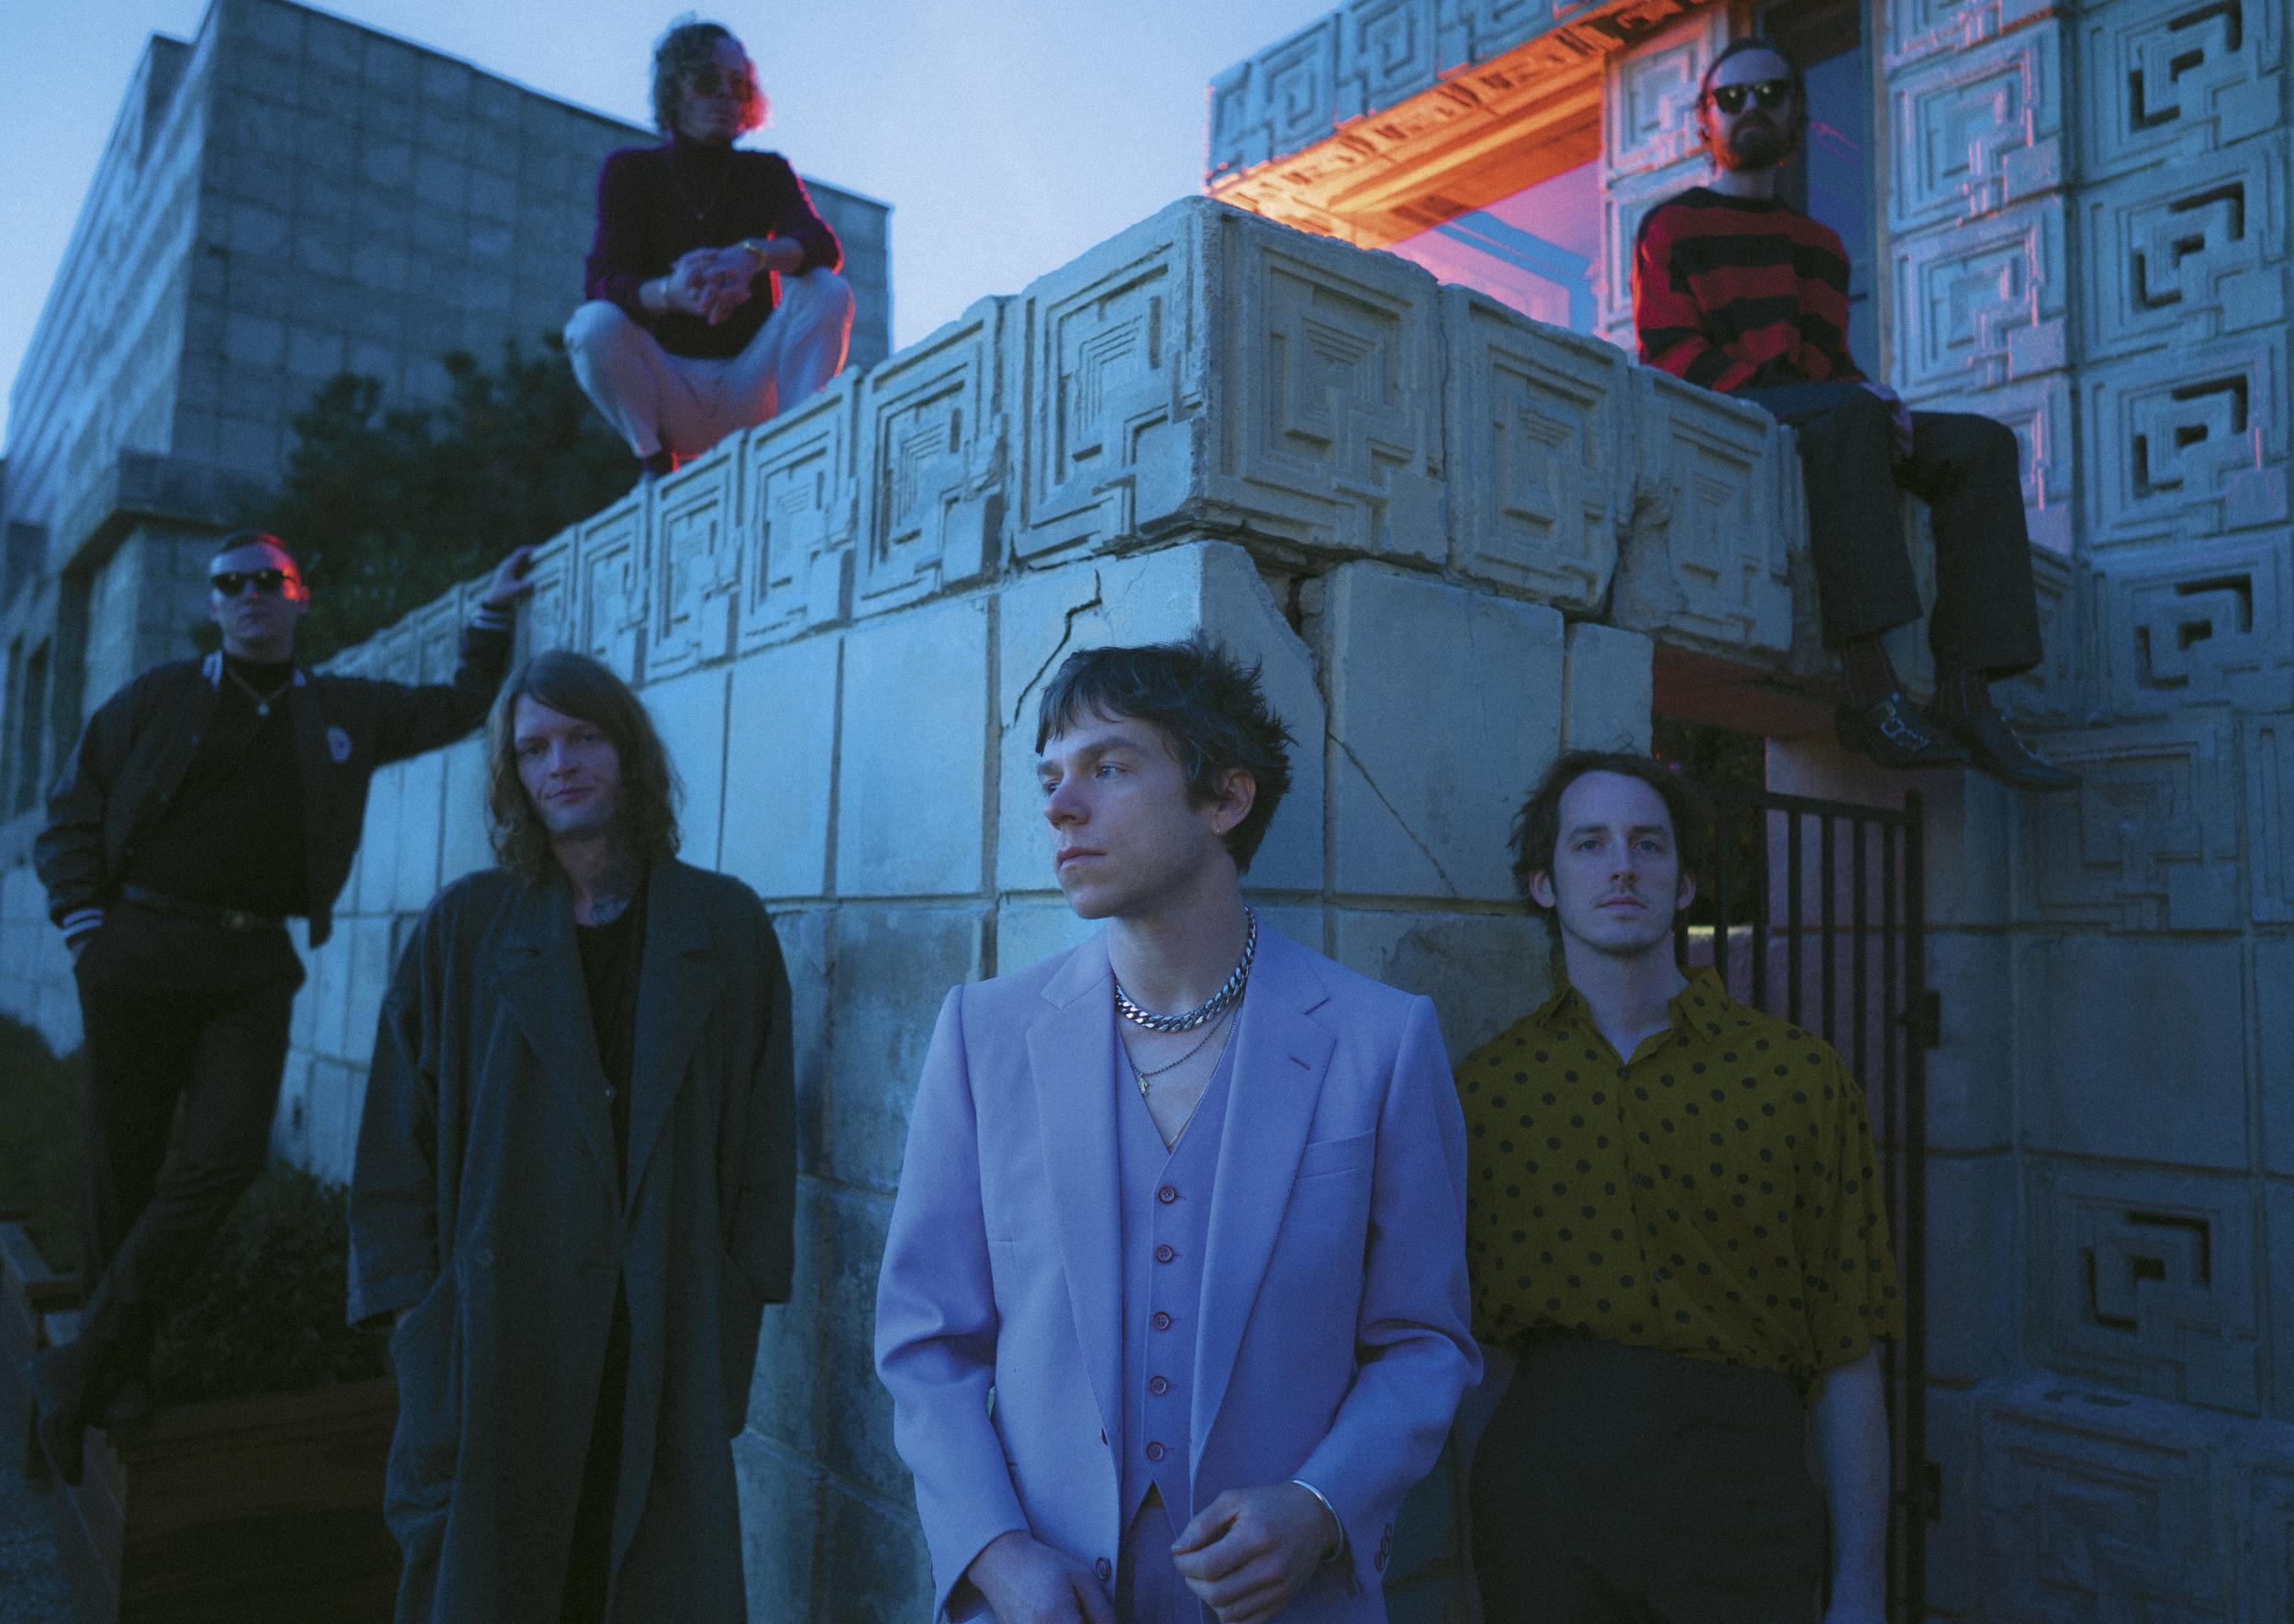 Cage the Elephant's Matt Shultz: 'There was a huge potential of me not being here'